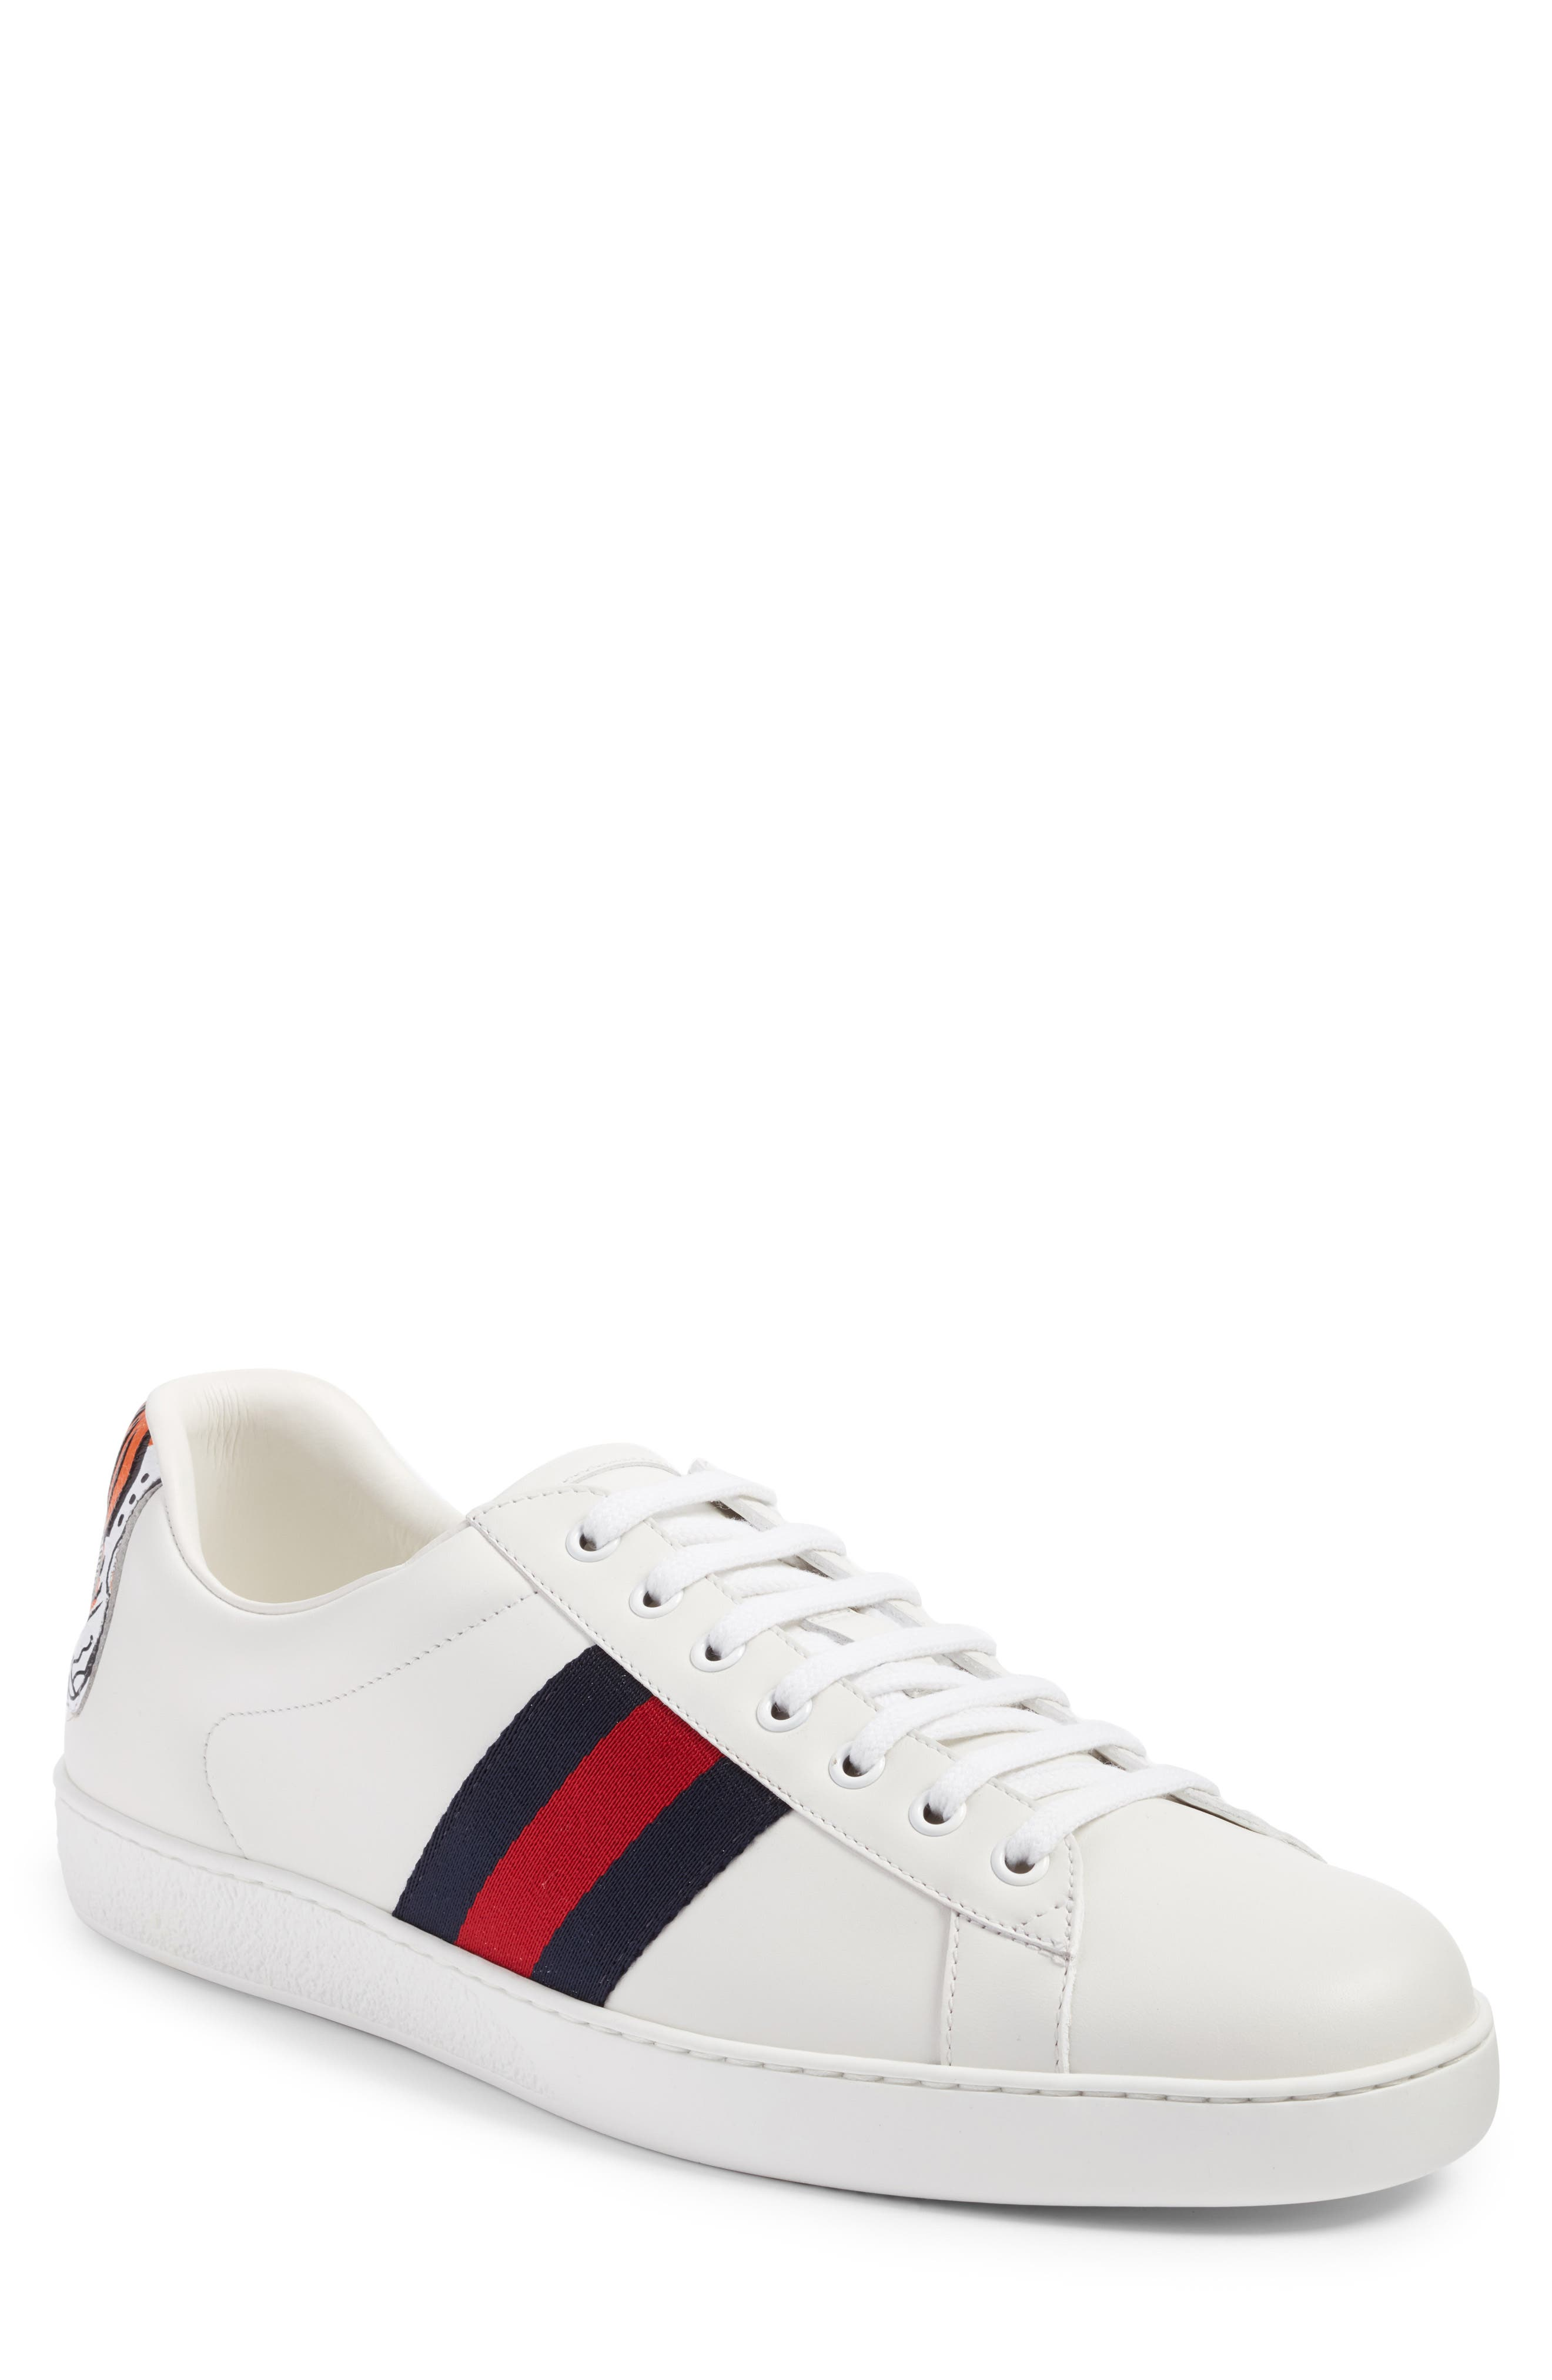 Main Image - Gucci New Ace Tiger Sneaker (Men)